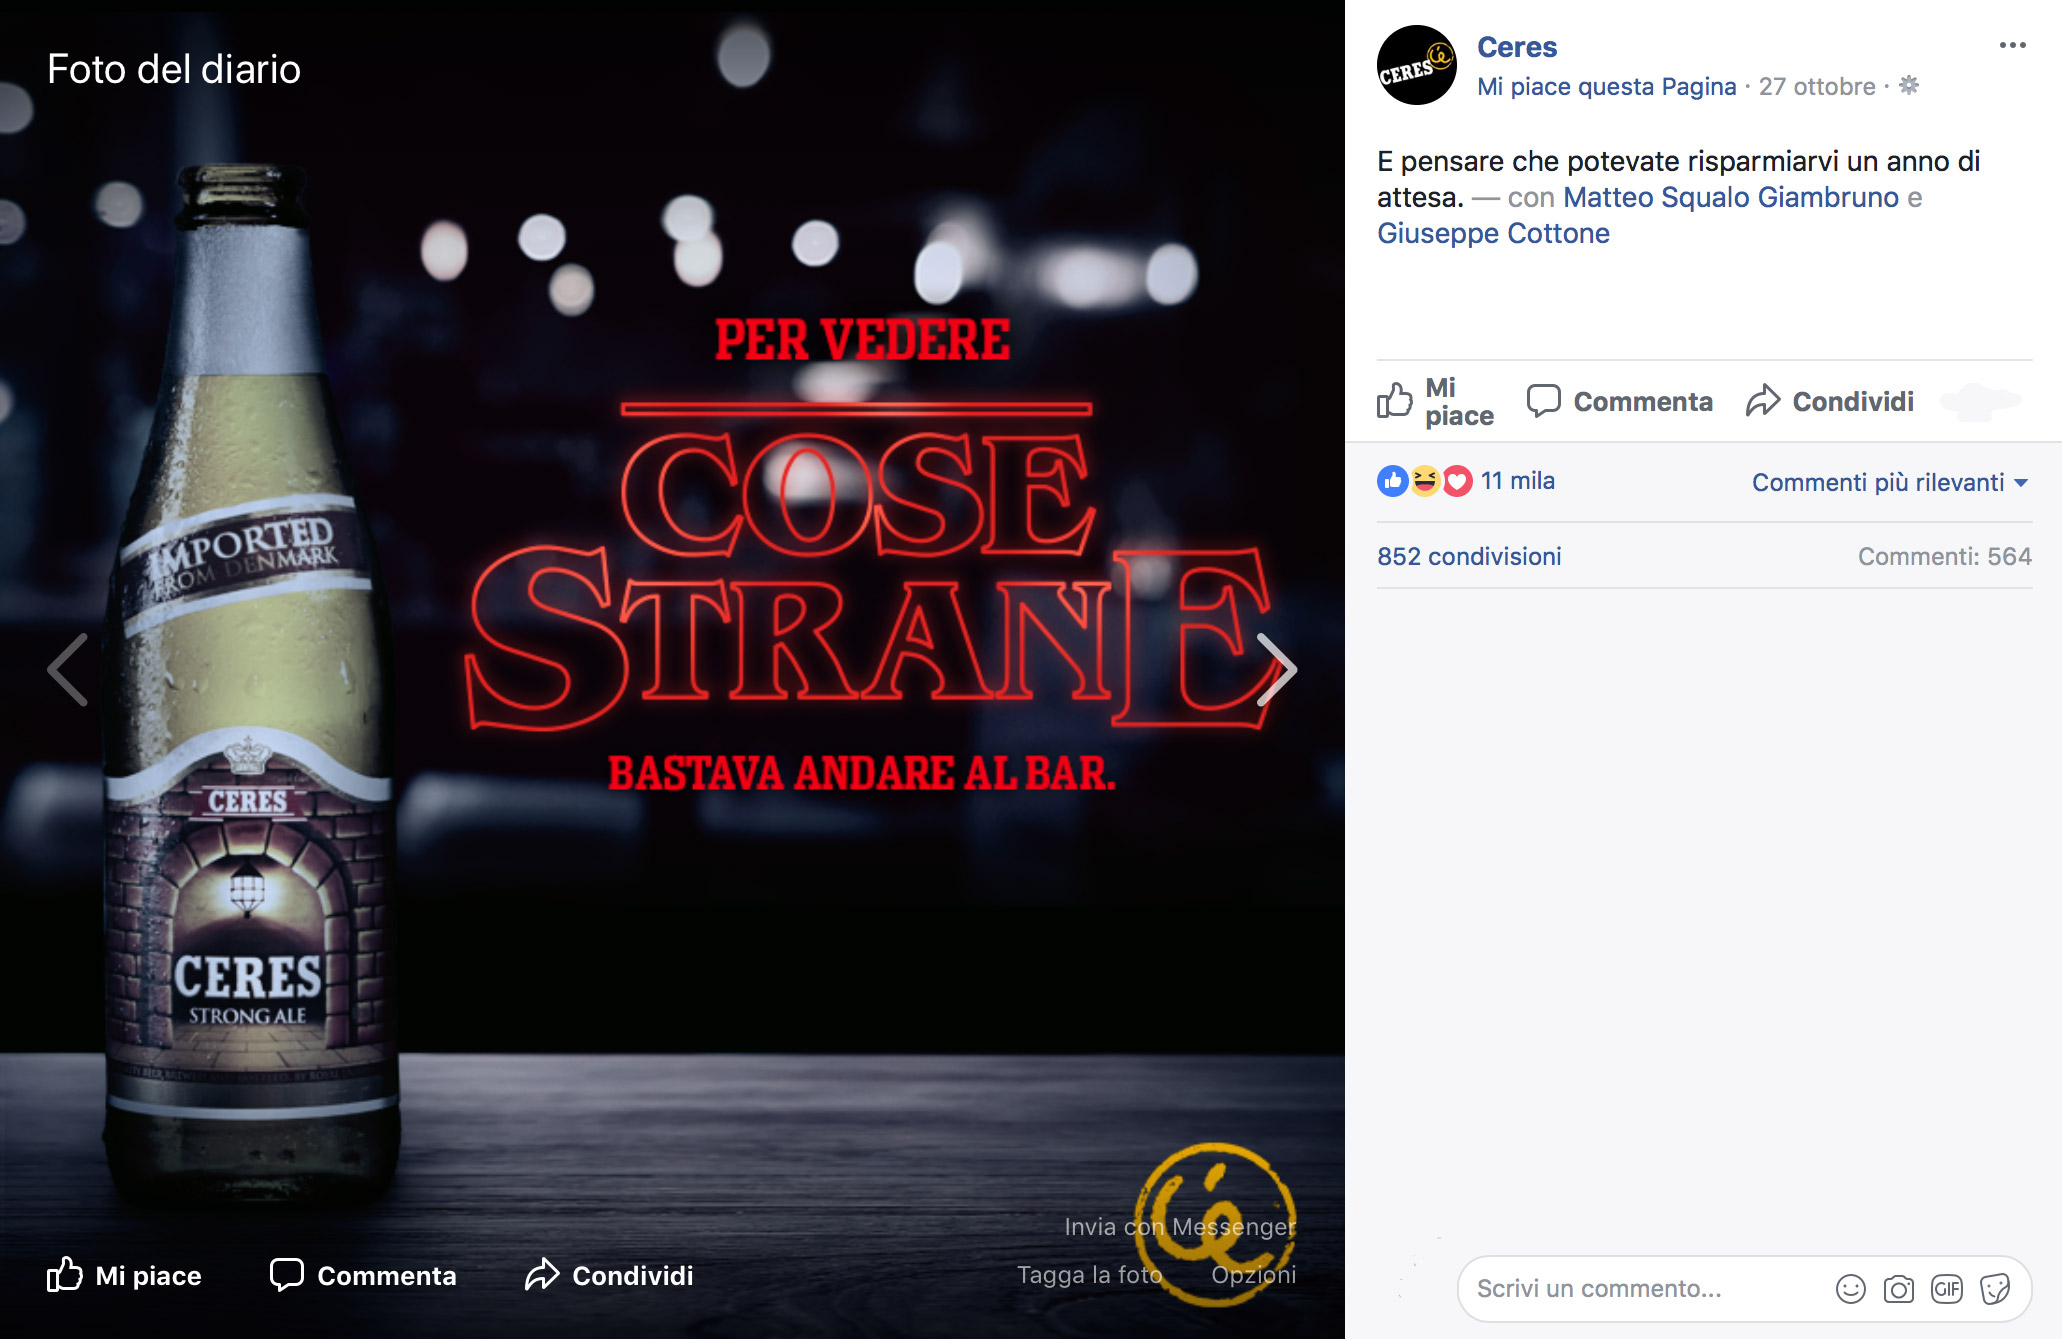 social network - Post della Ceres in occasione del lancio di Stranger Things 2